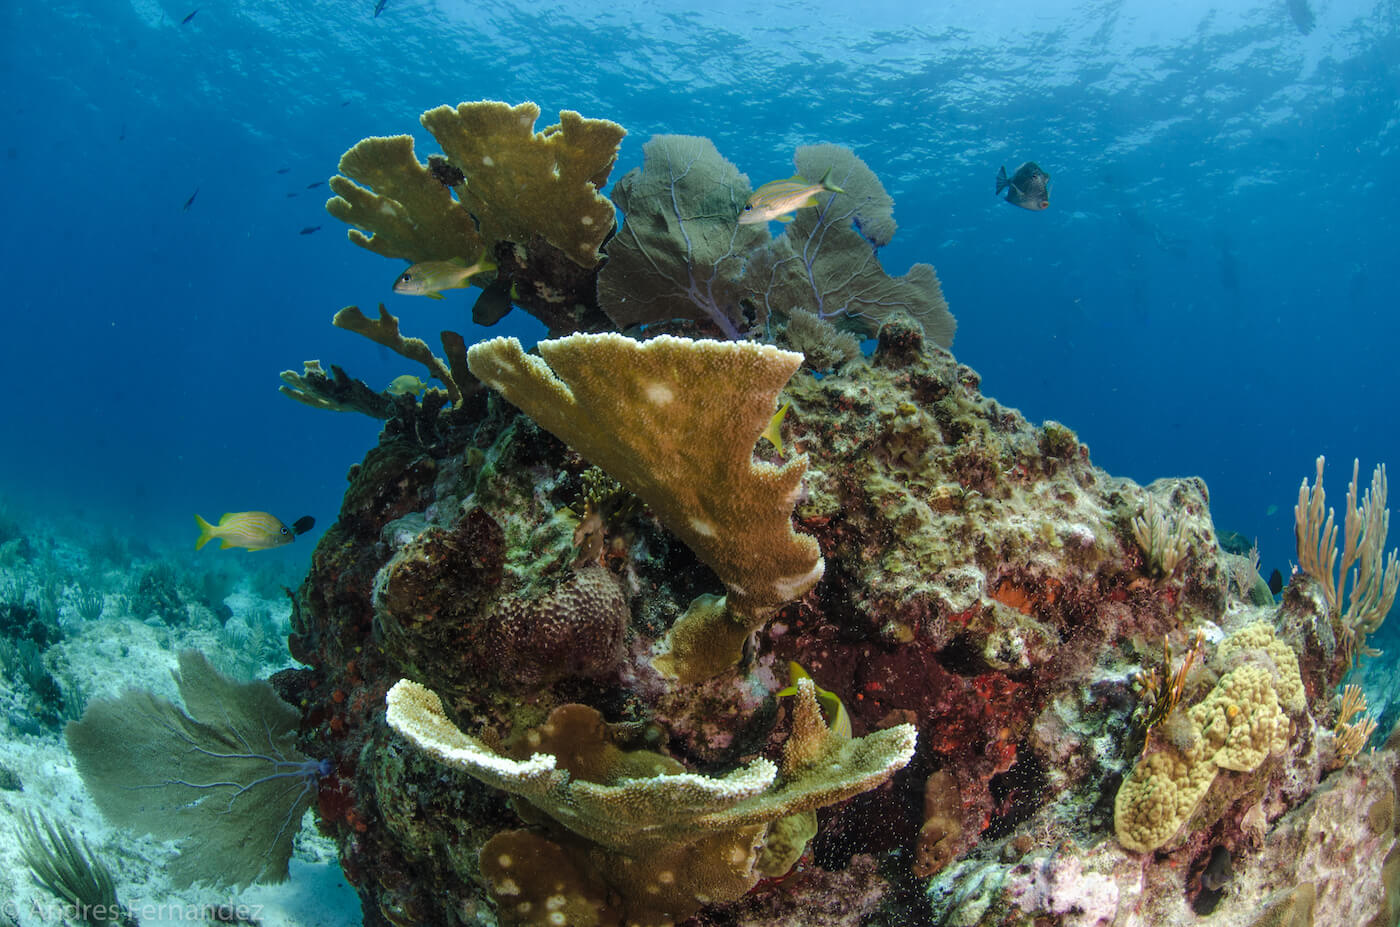 Isla Mujeres Coral Reefs Squalo Adventures Scuba Diving Snorkeling-39